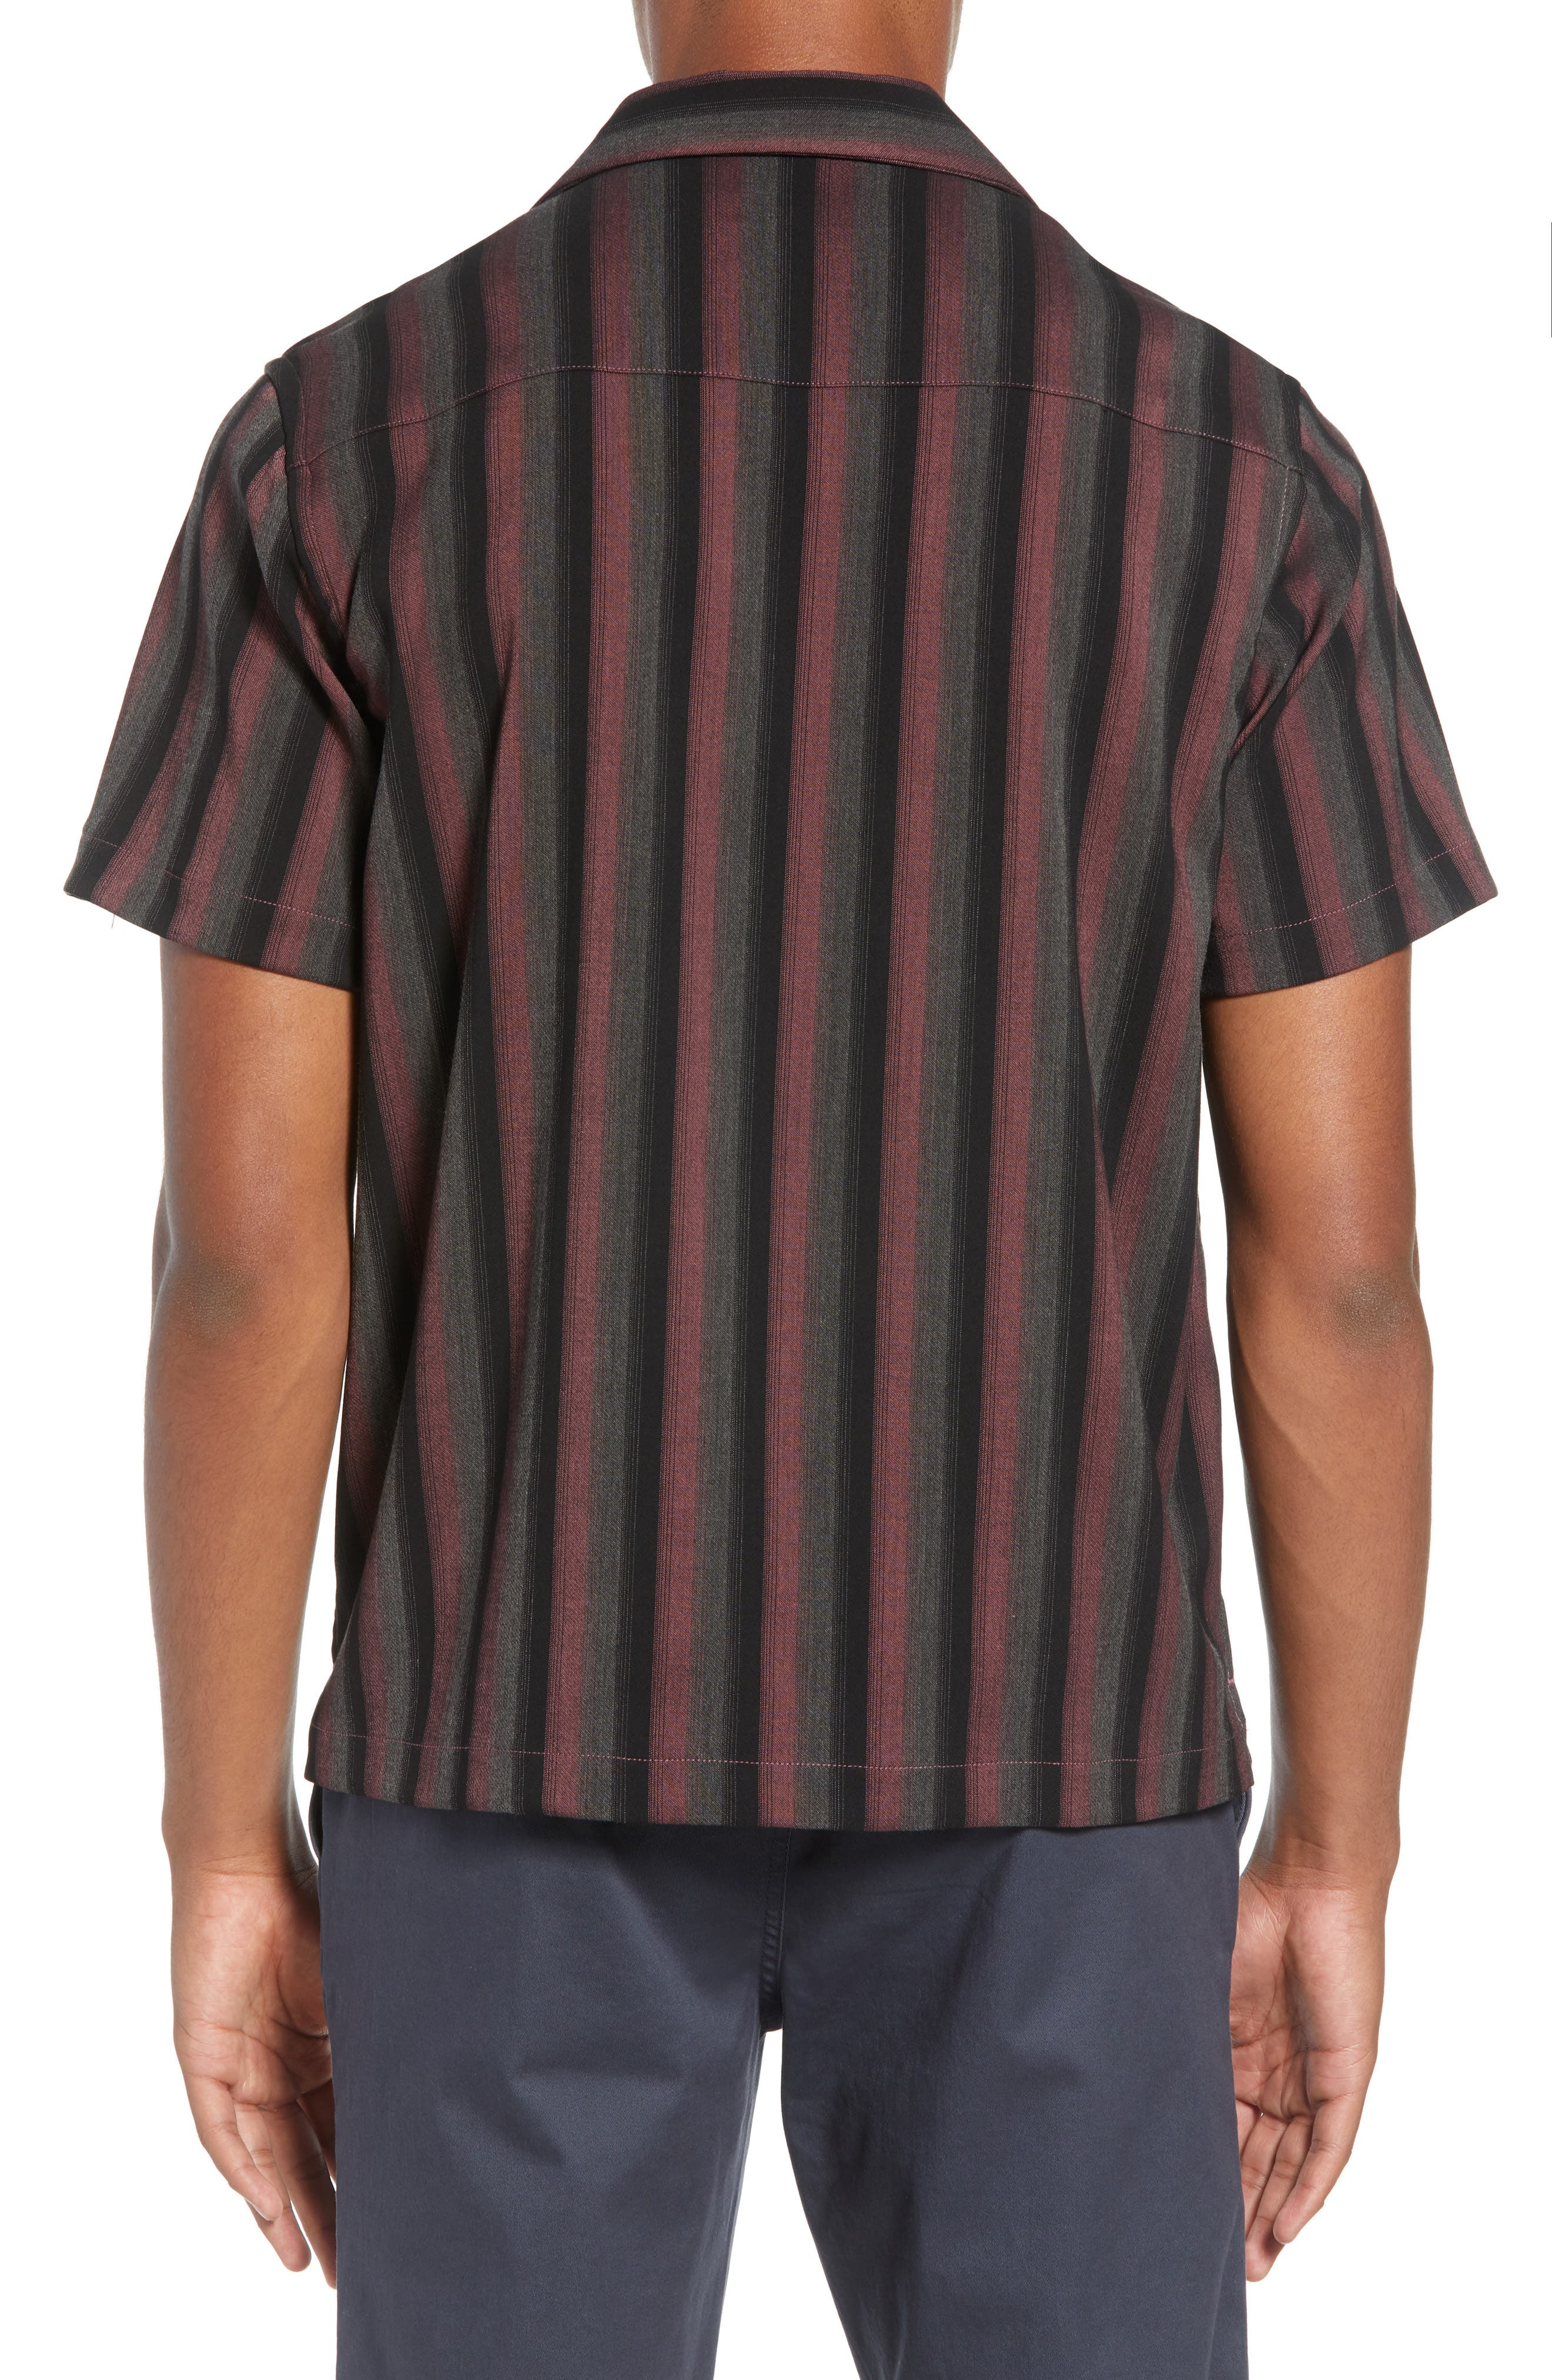 Canty Frequency Camp Shirt,                             Alternate thumbnail 3, color,                             650